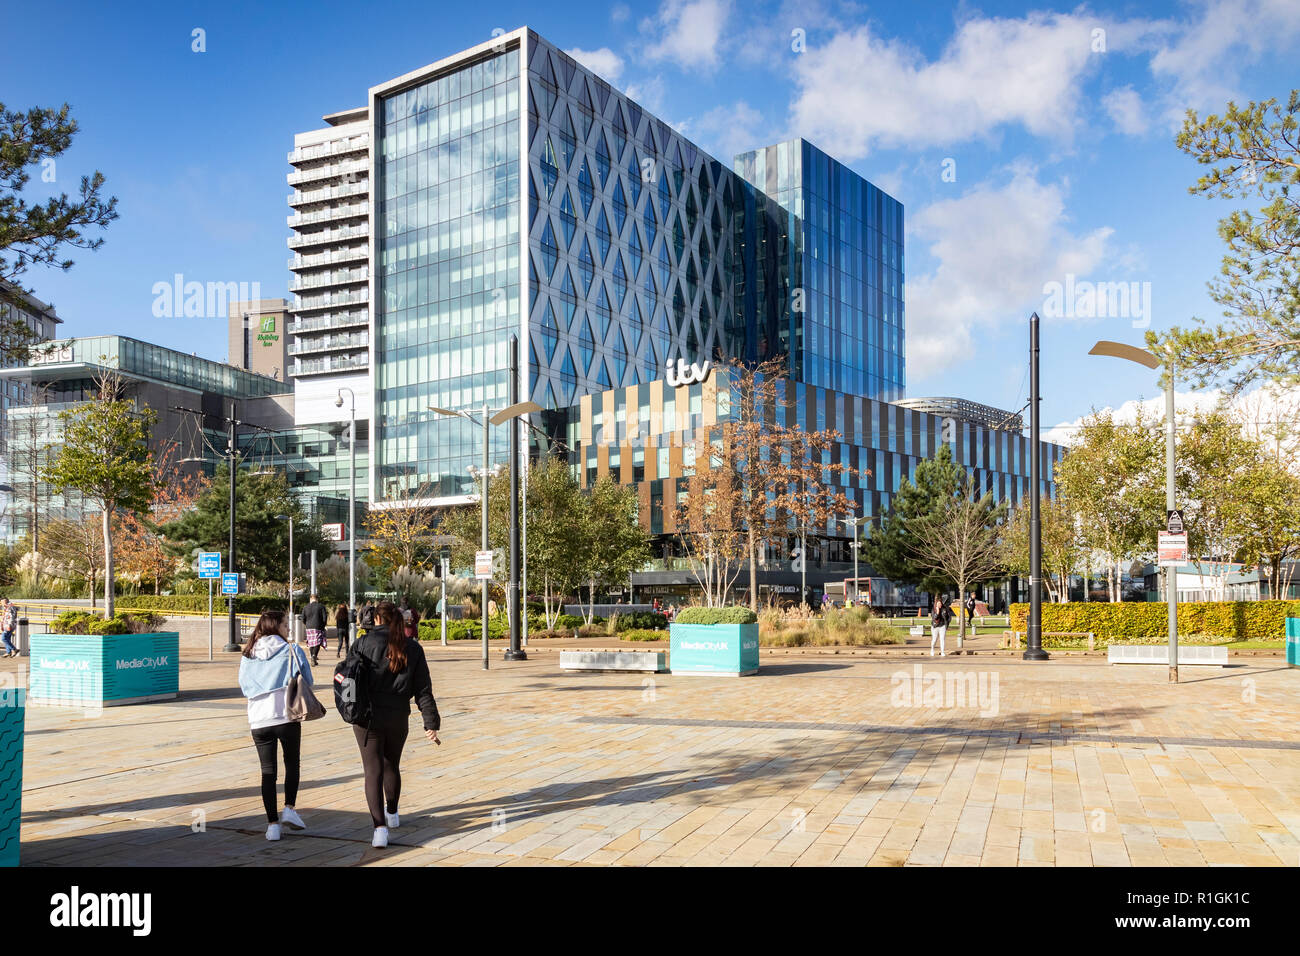 2 November 2018: Salford Quays, Manchester, UK - ITV buildings on a sunny autumn day, clear blue sky, two young women walking towards building. - Stock Image